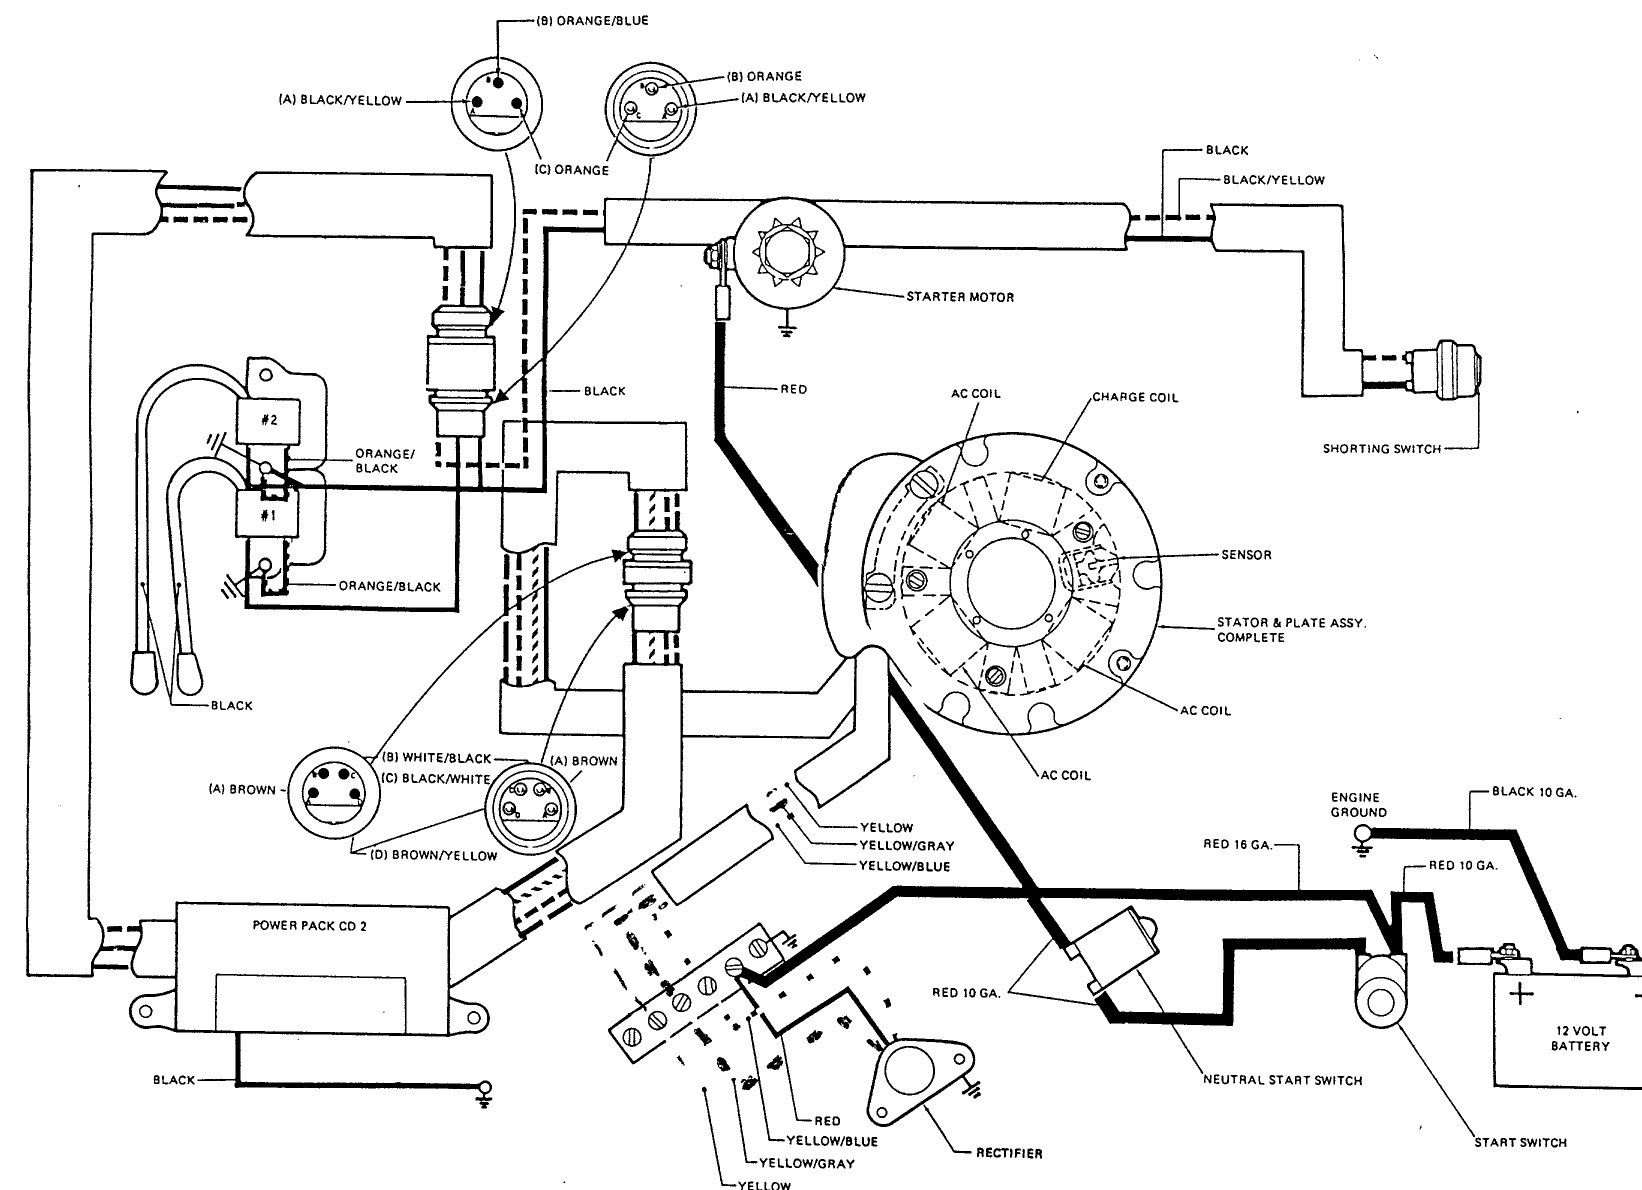 Key Switch Wire Diagram For A Mercury Outboaed With Chock In 2021 Electric Choke Mercury Outboard Electrical Diagram